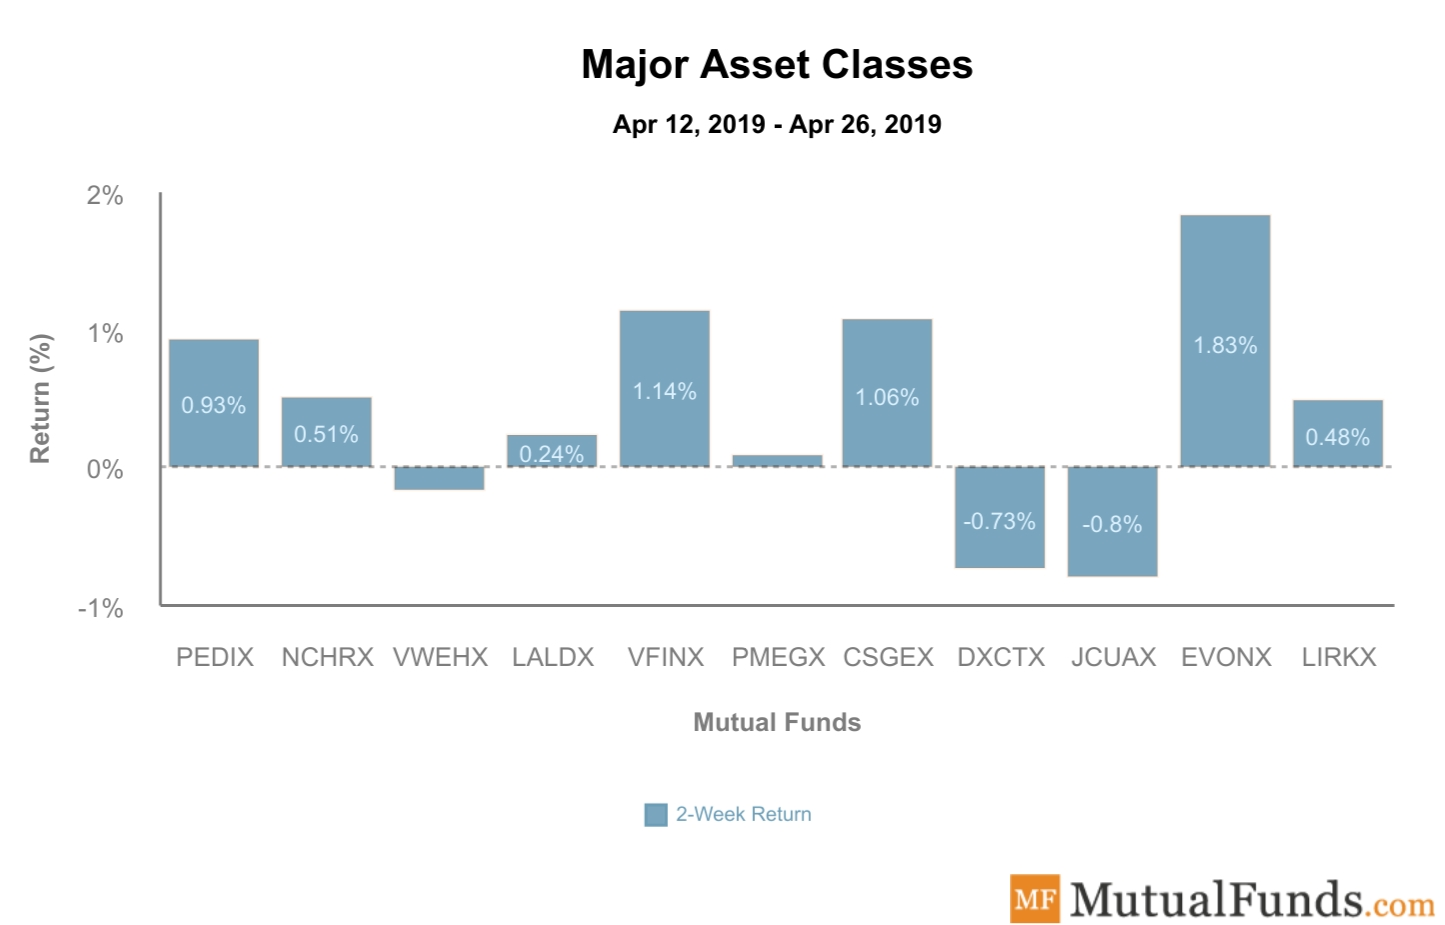 Major Asset Classes Performance April 30